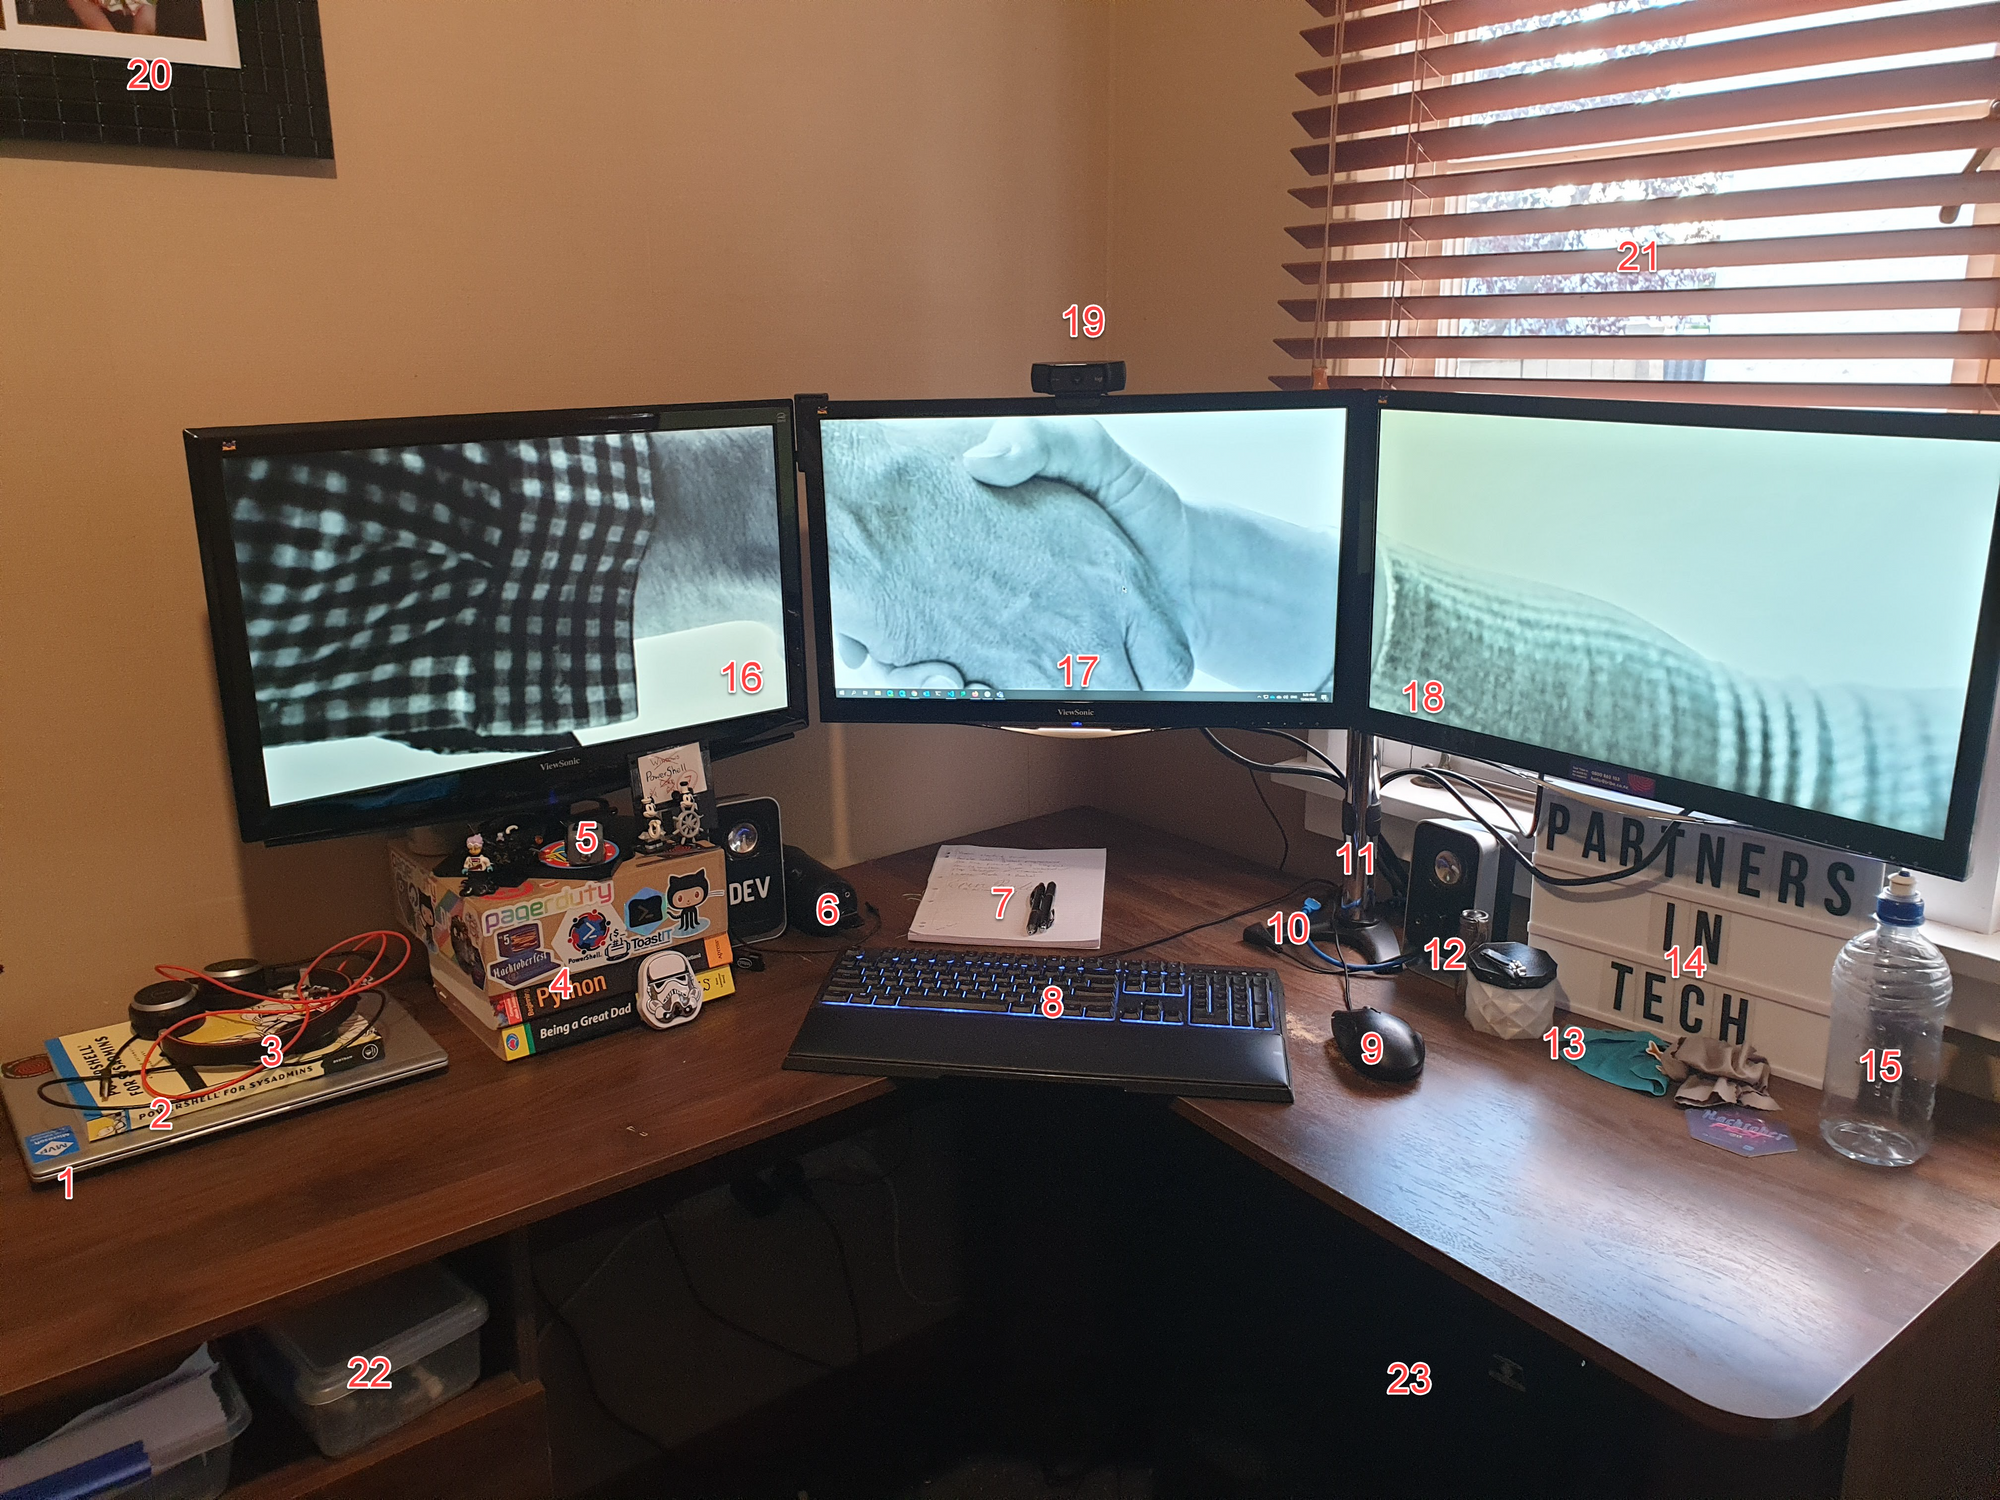 Photo of my desk with numbered callouts